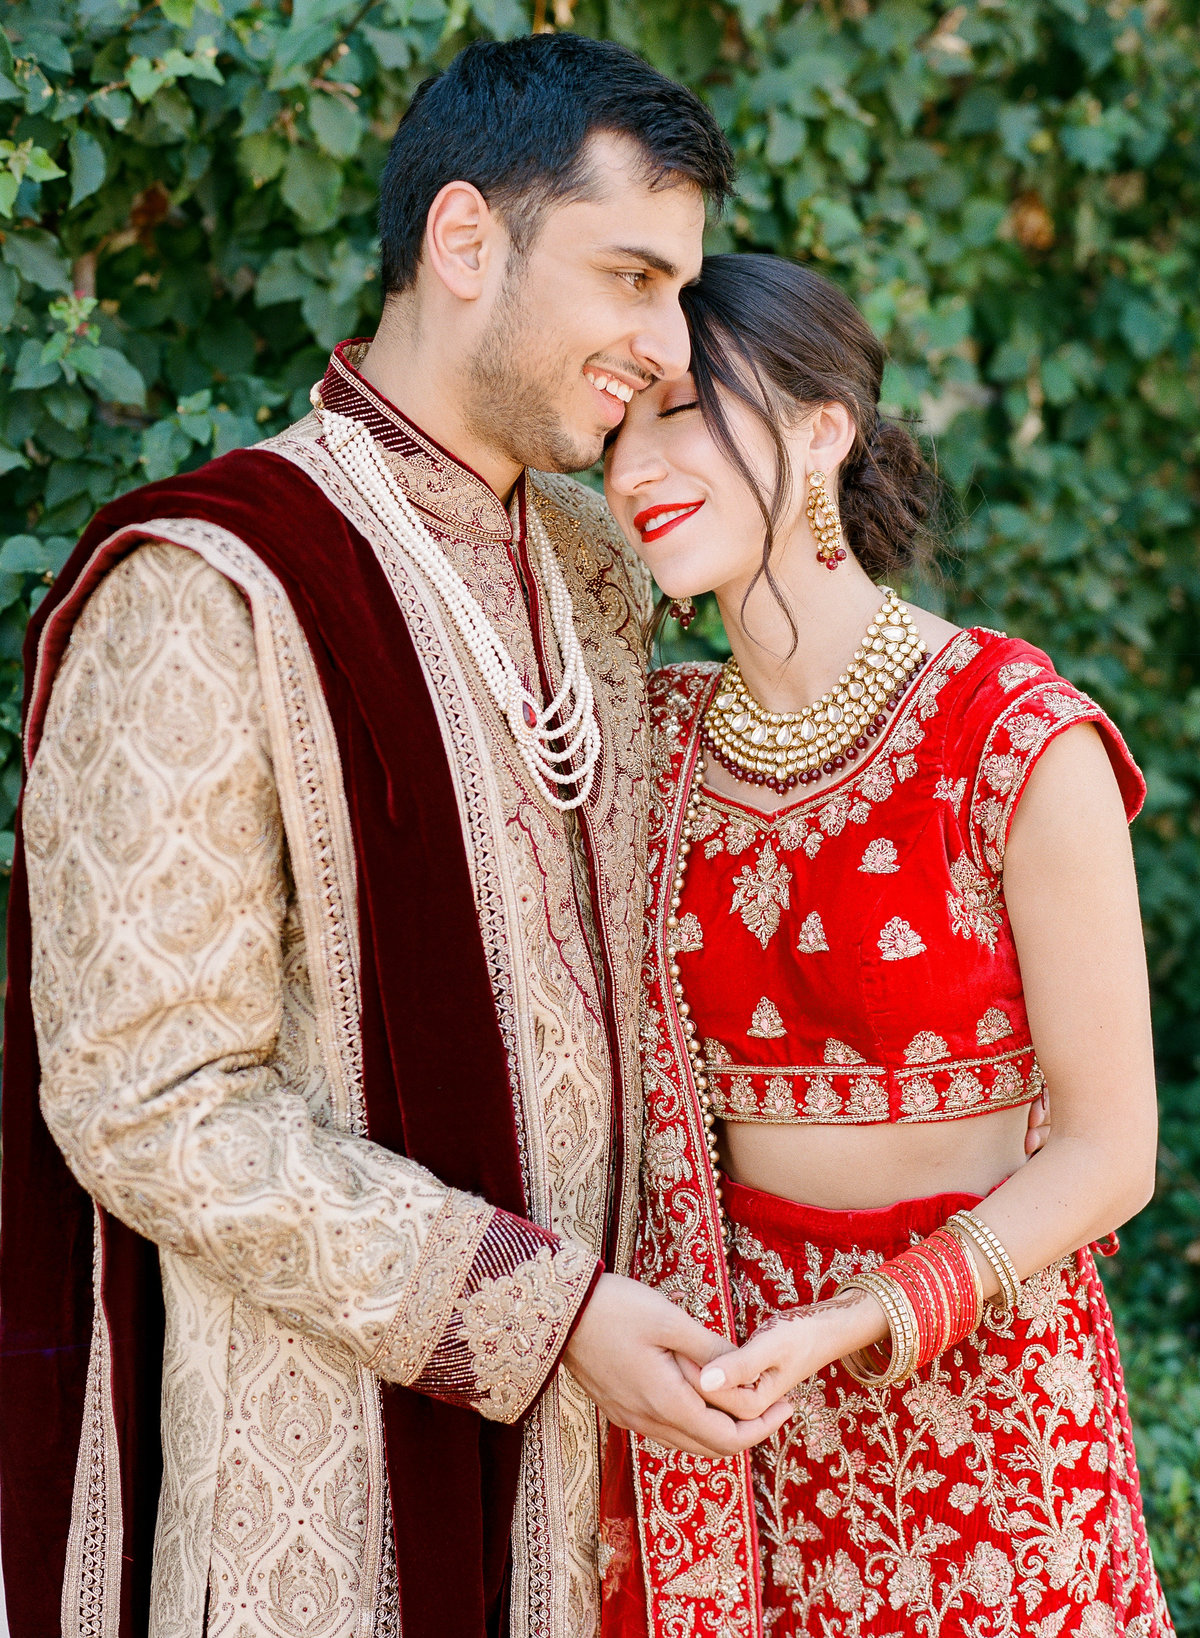 sasha-aneesh-wedding-bride-groom-indian-128